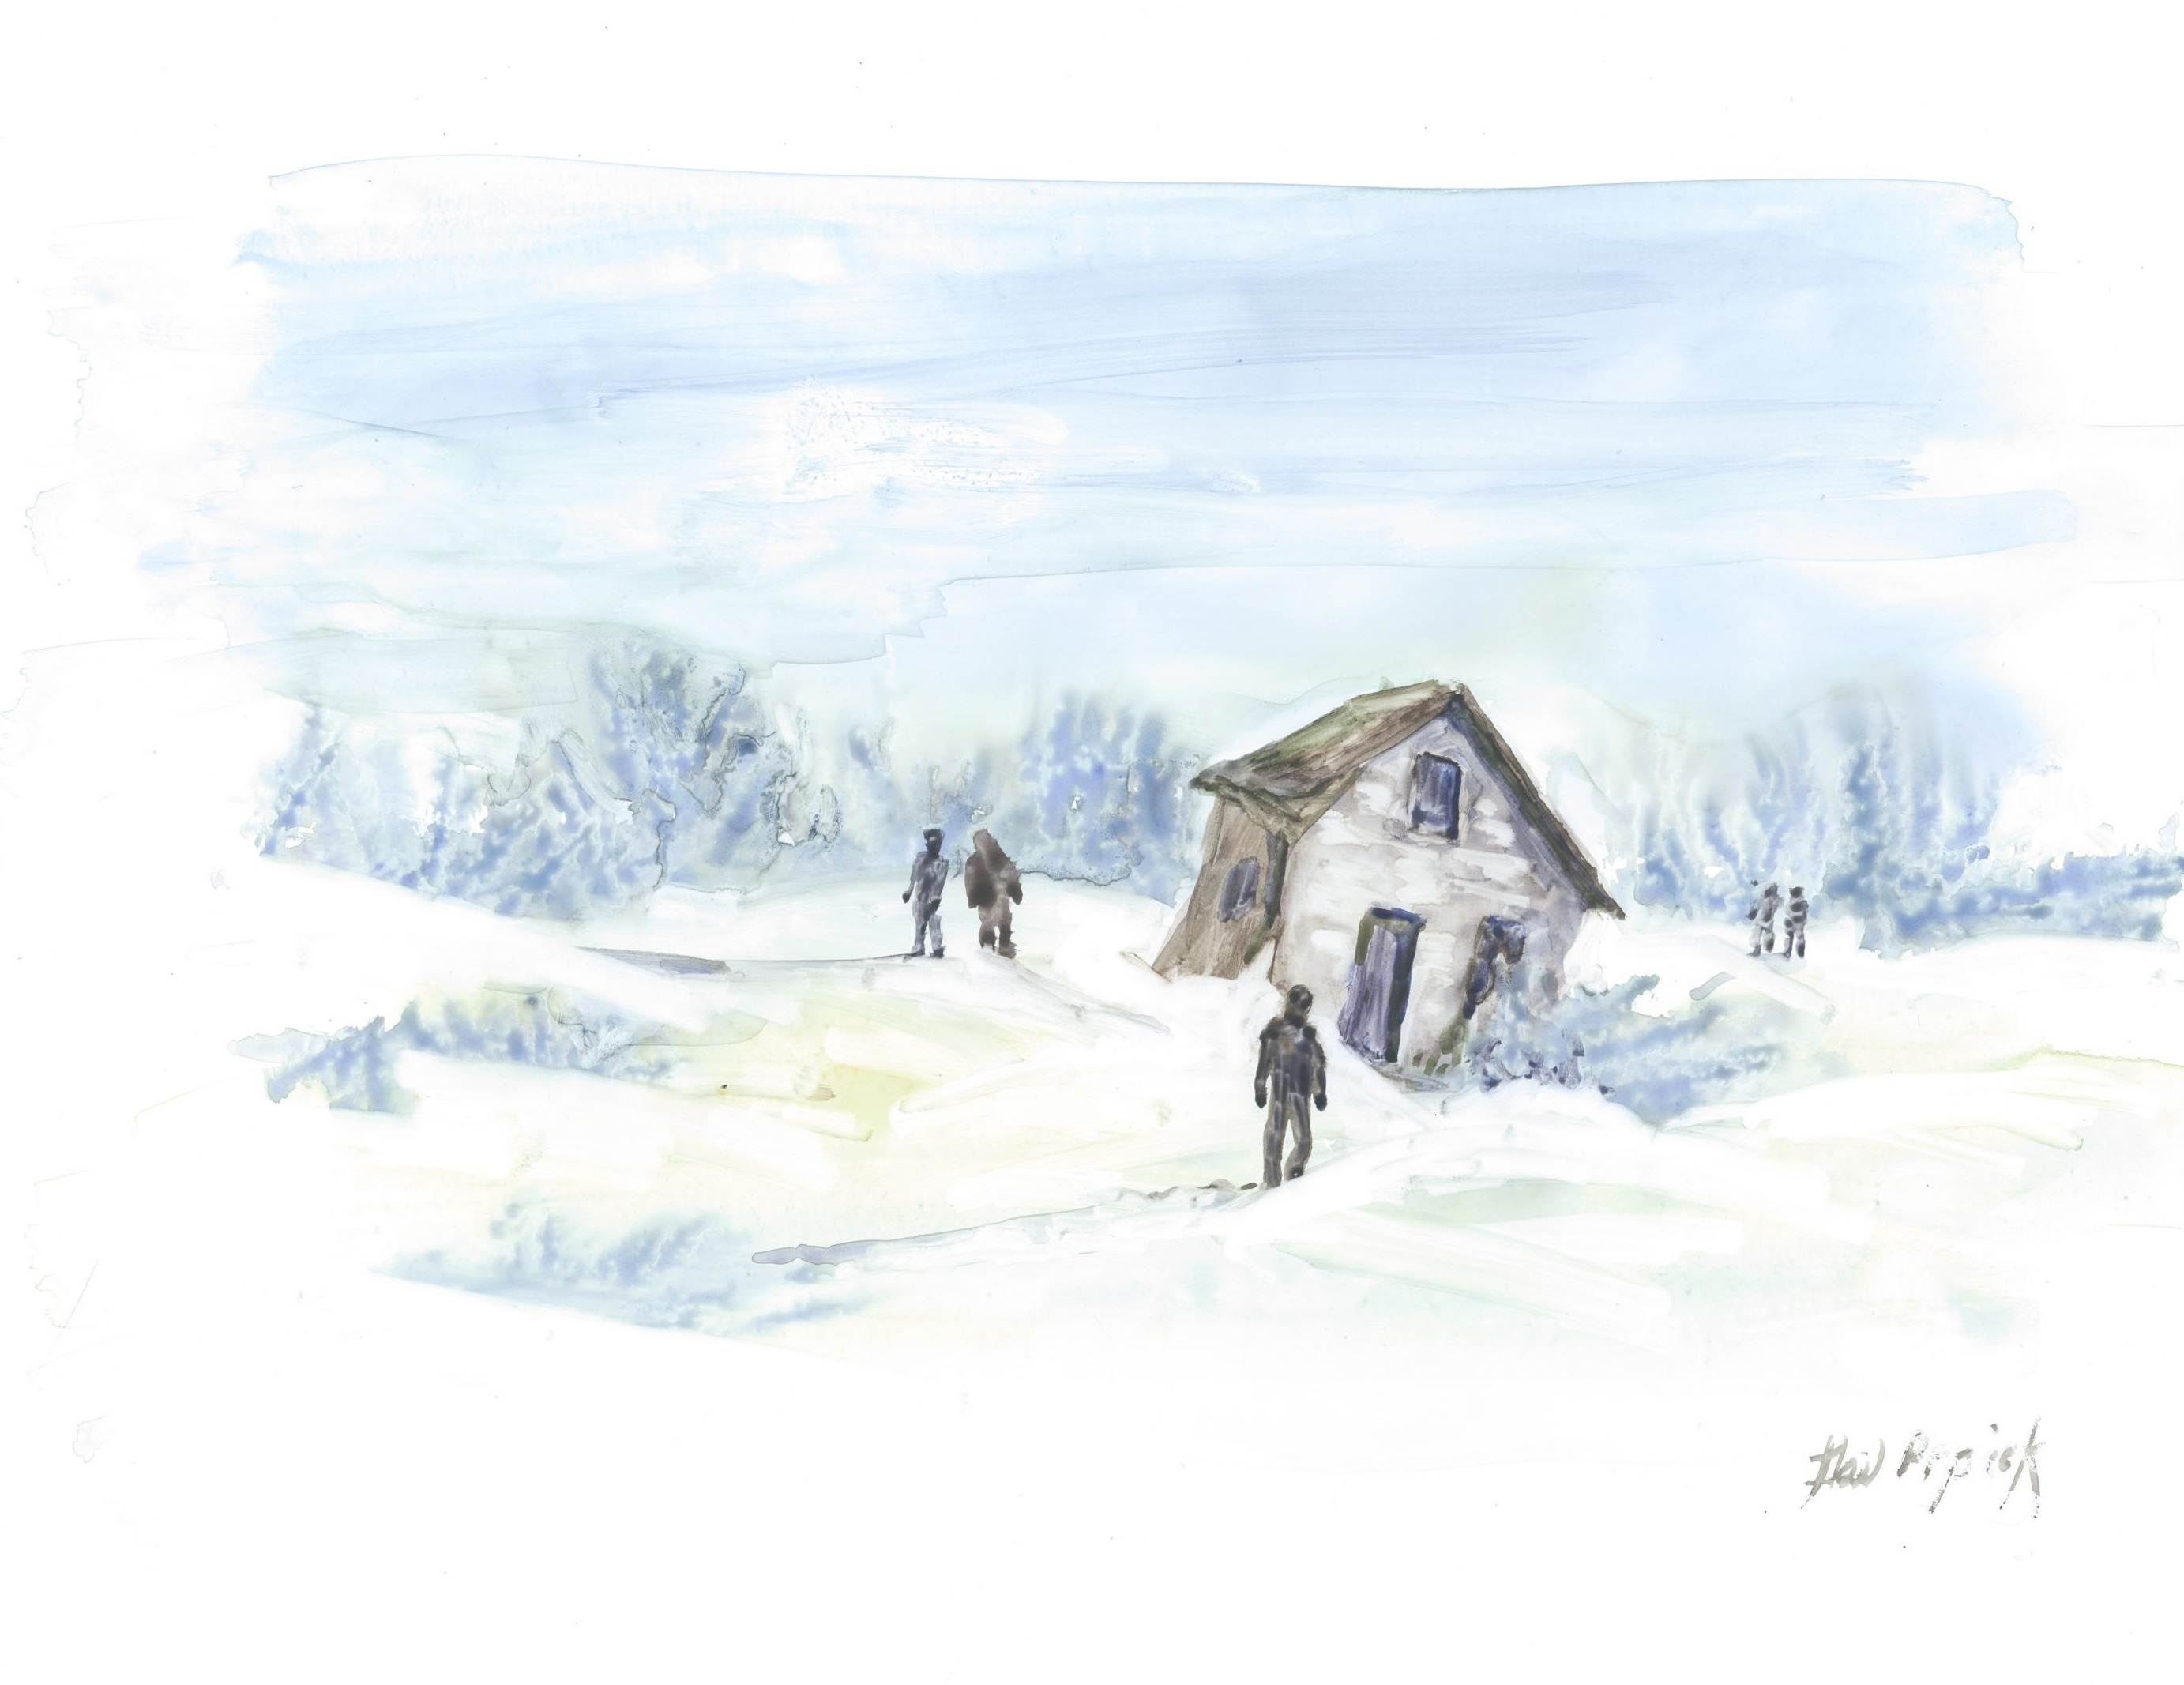 The day Fertuck disappeared, it was unusually mild. But the next day, when the search began, the weather turned and the prairie fields were blanketed with fresh snow. (Gail Prpick/For CBC)